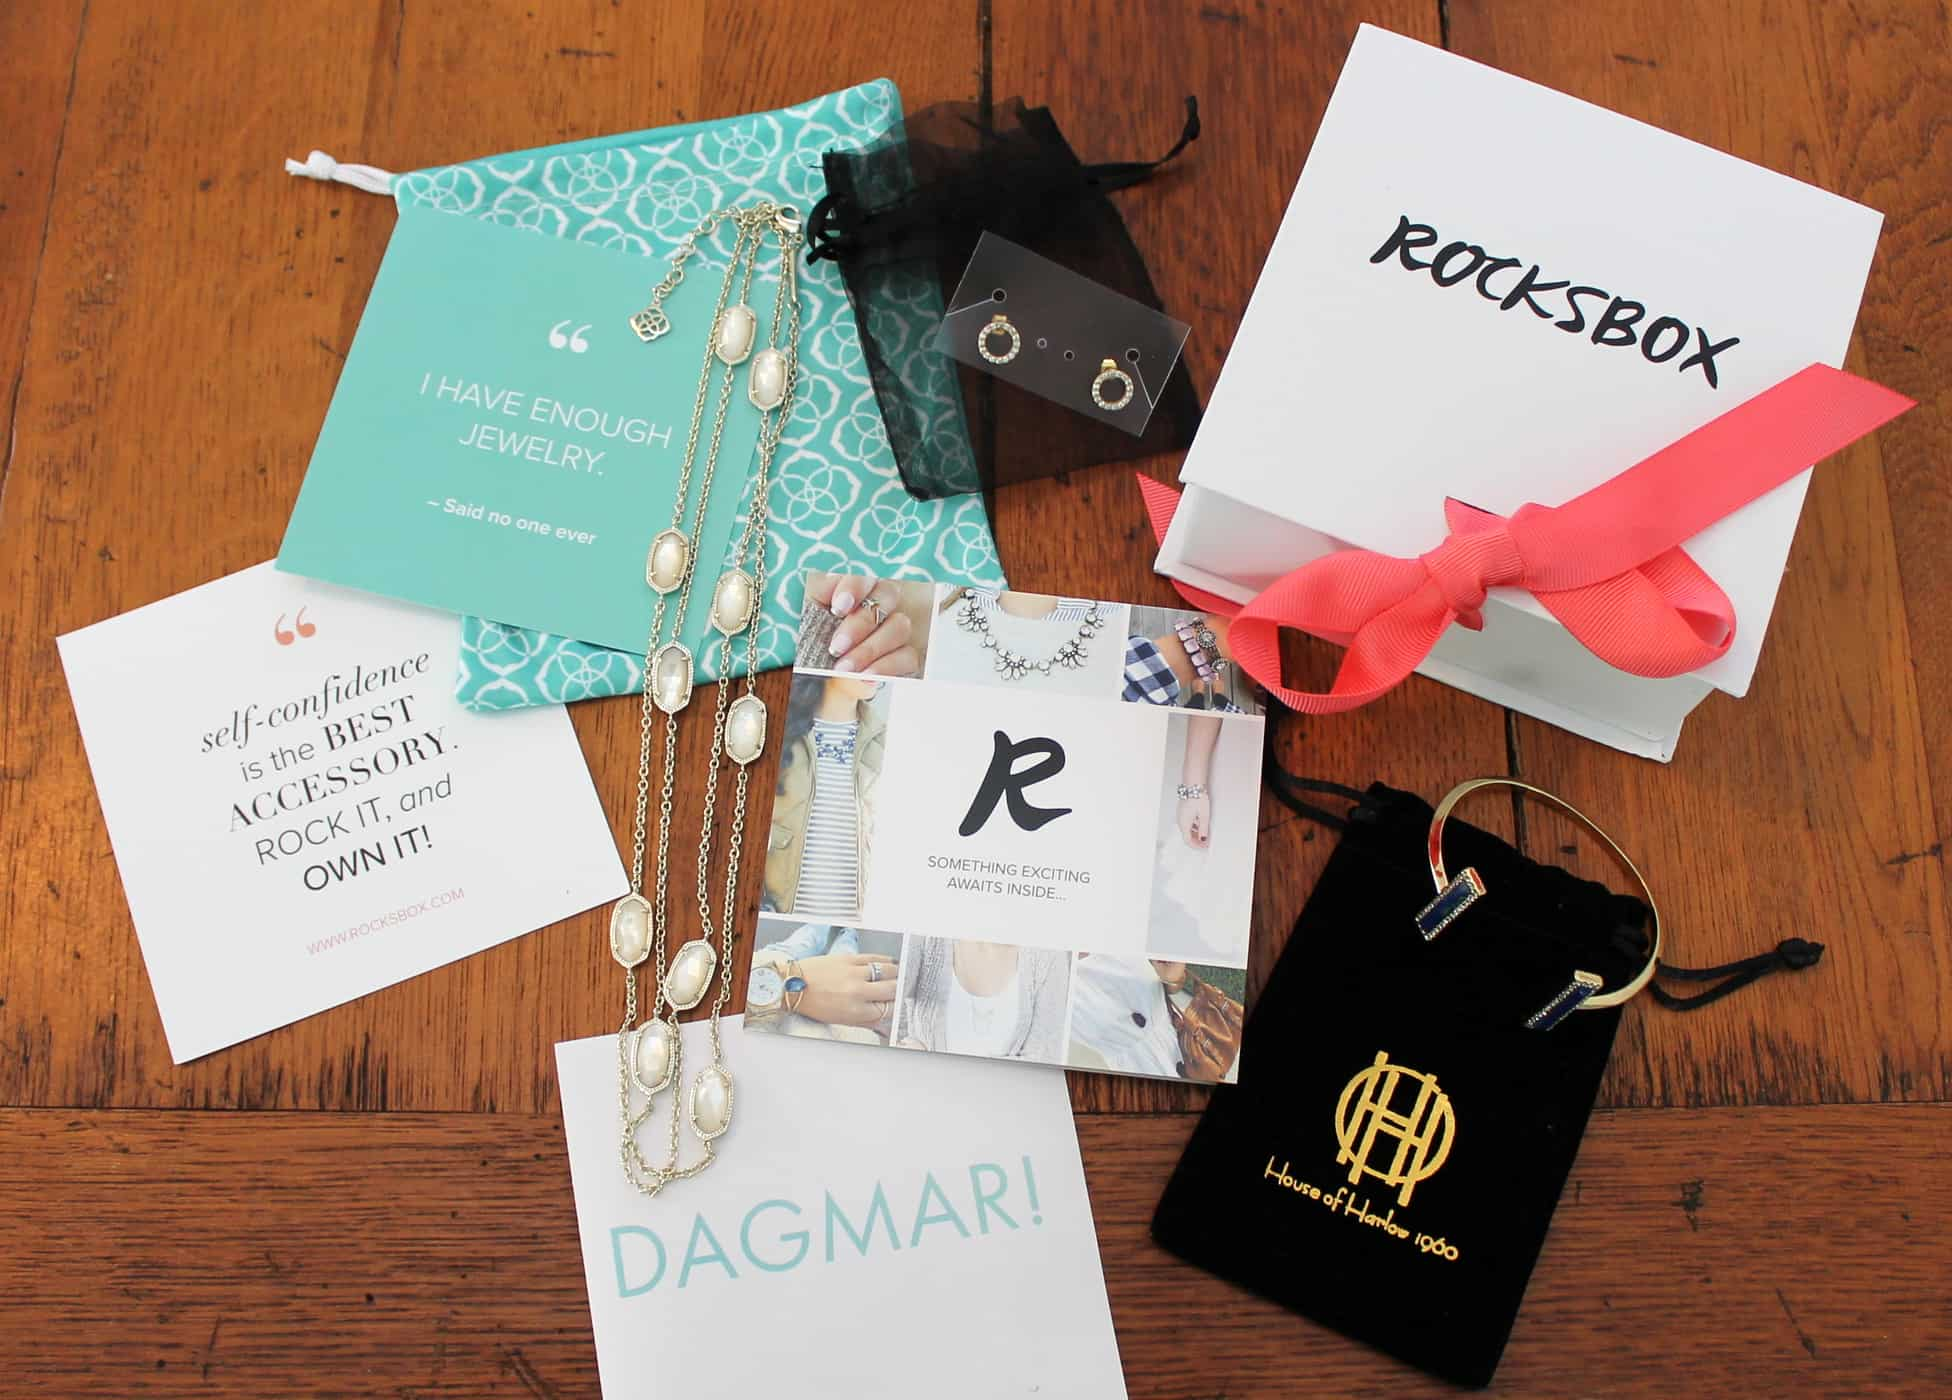 My Favorite Things: Don't Buy It – Rent Jewelry From Rocksbox